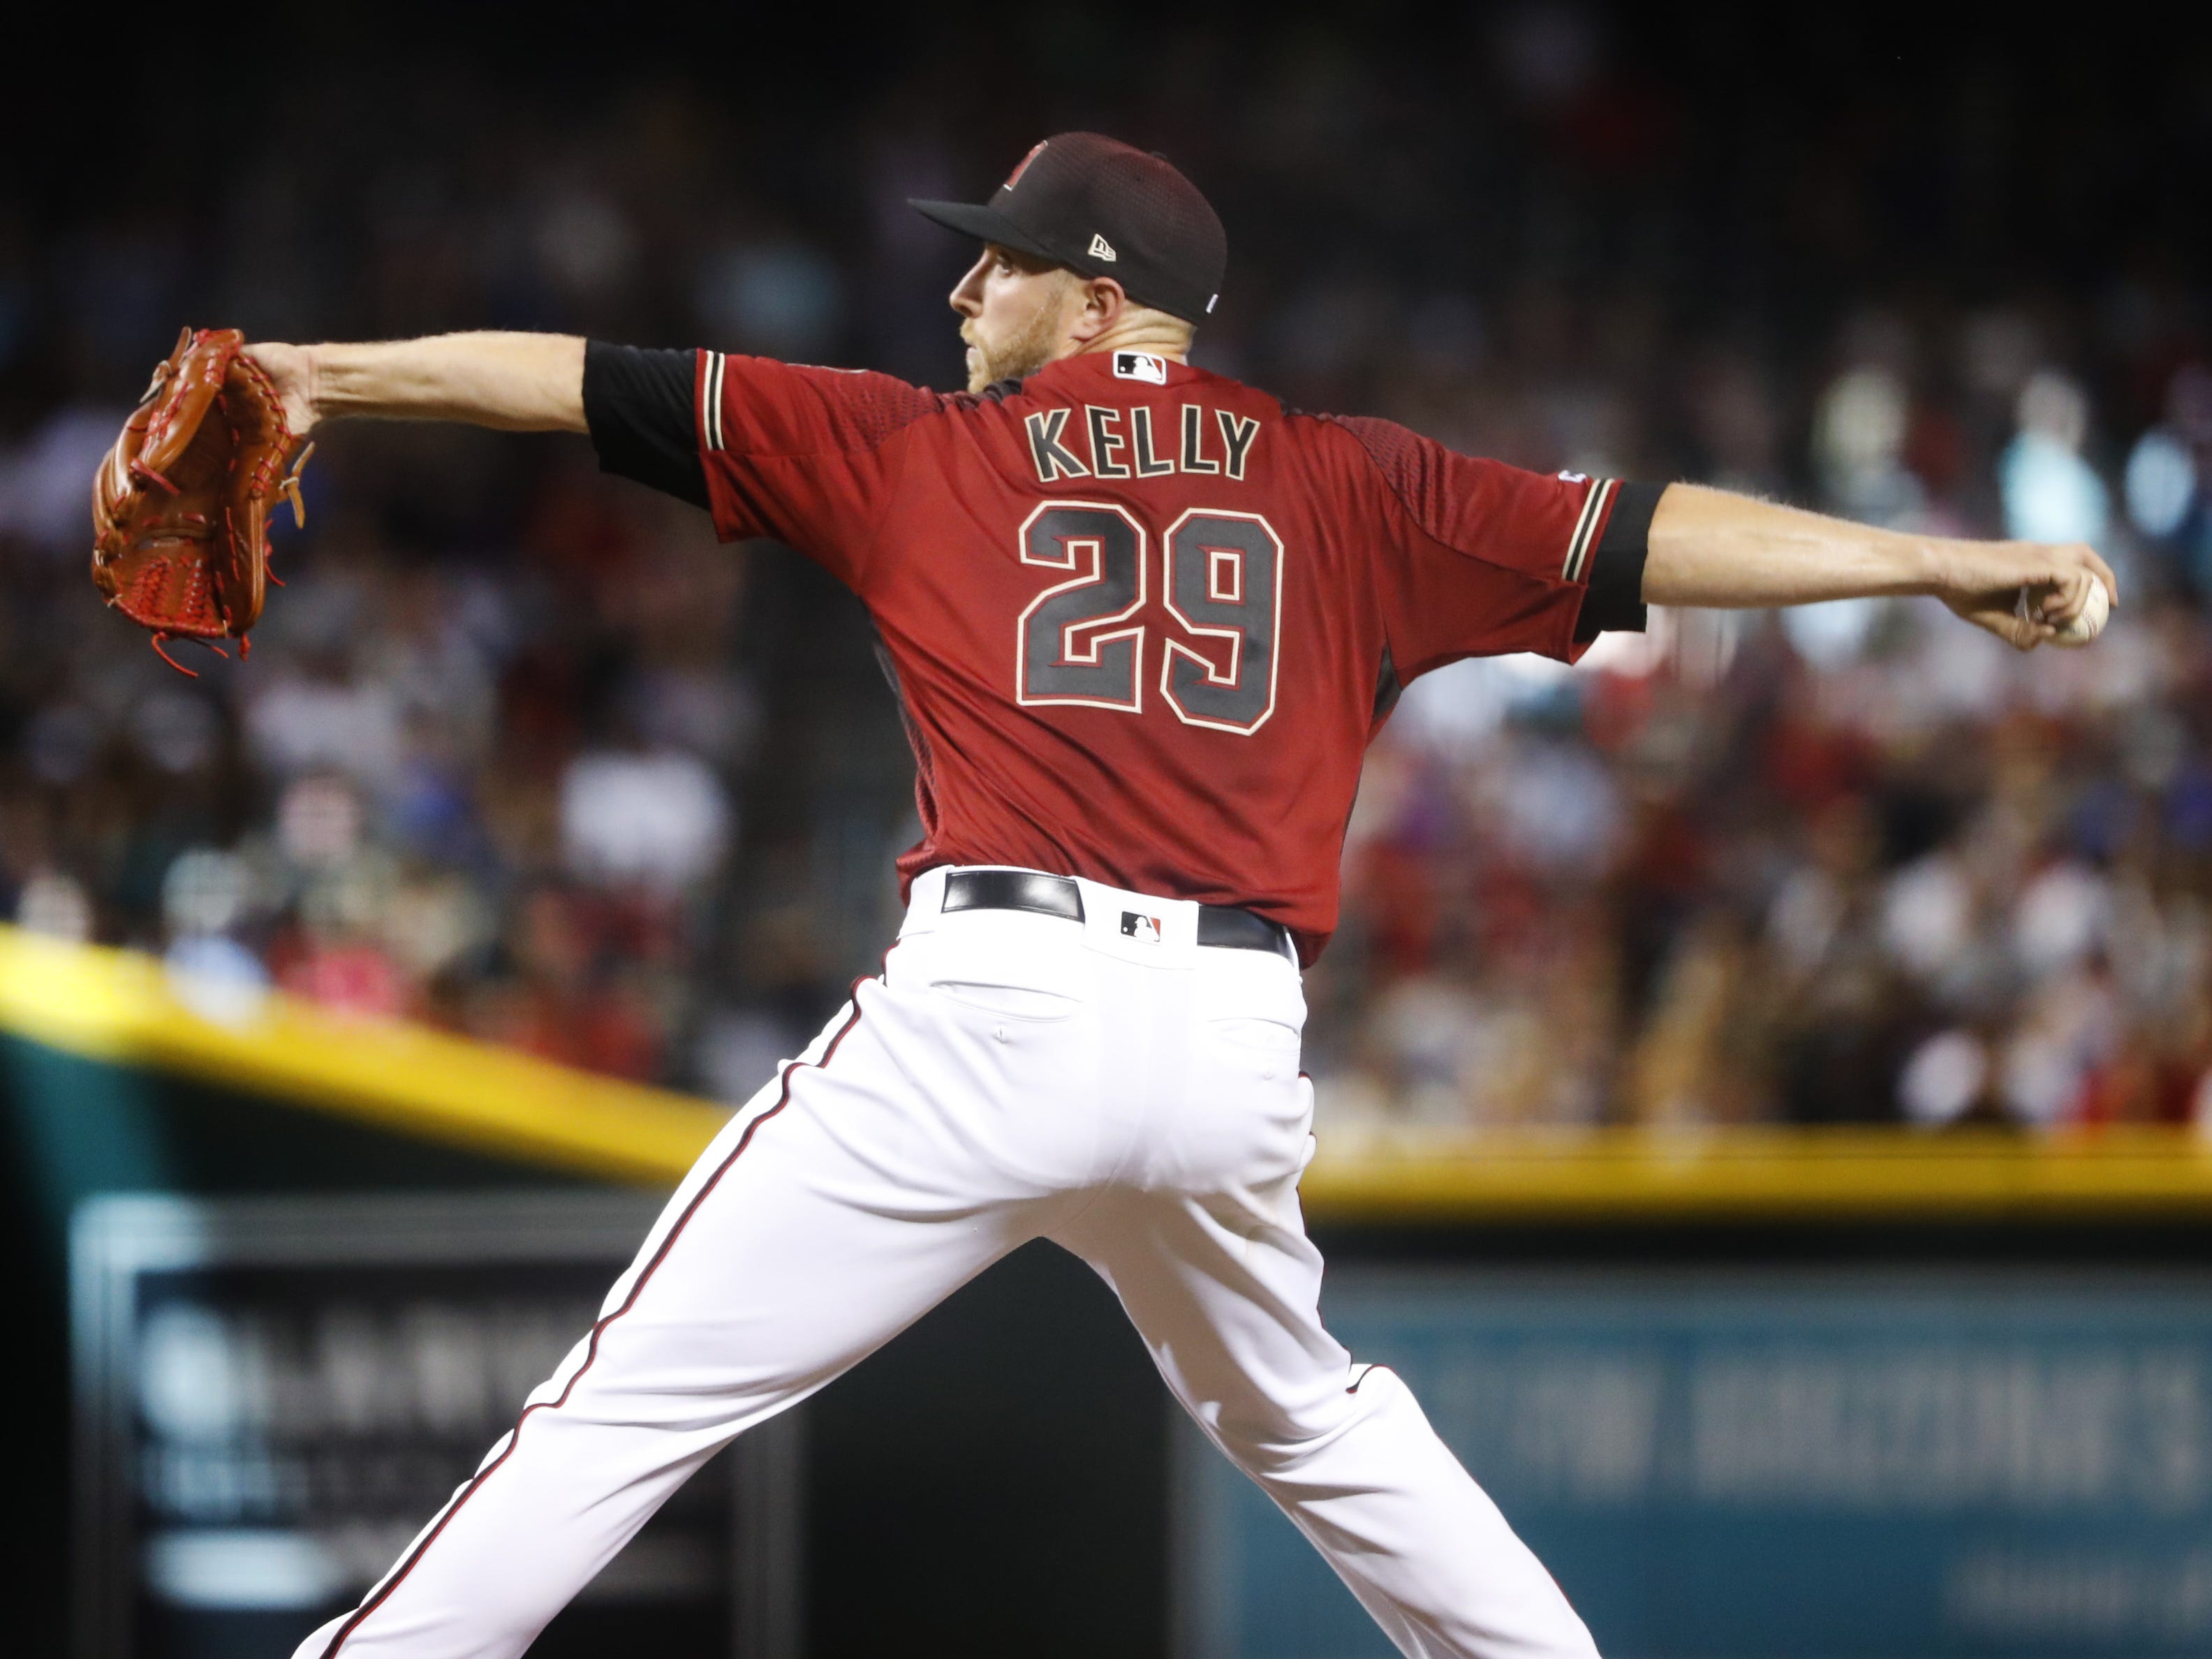 Diamondbacks' Merrill Kelly (29) pitches against the Red Sox during the fifth inning at Chase Field in Phoenix, Ariz. on April 7, 2019.